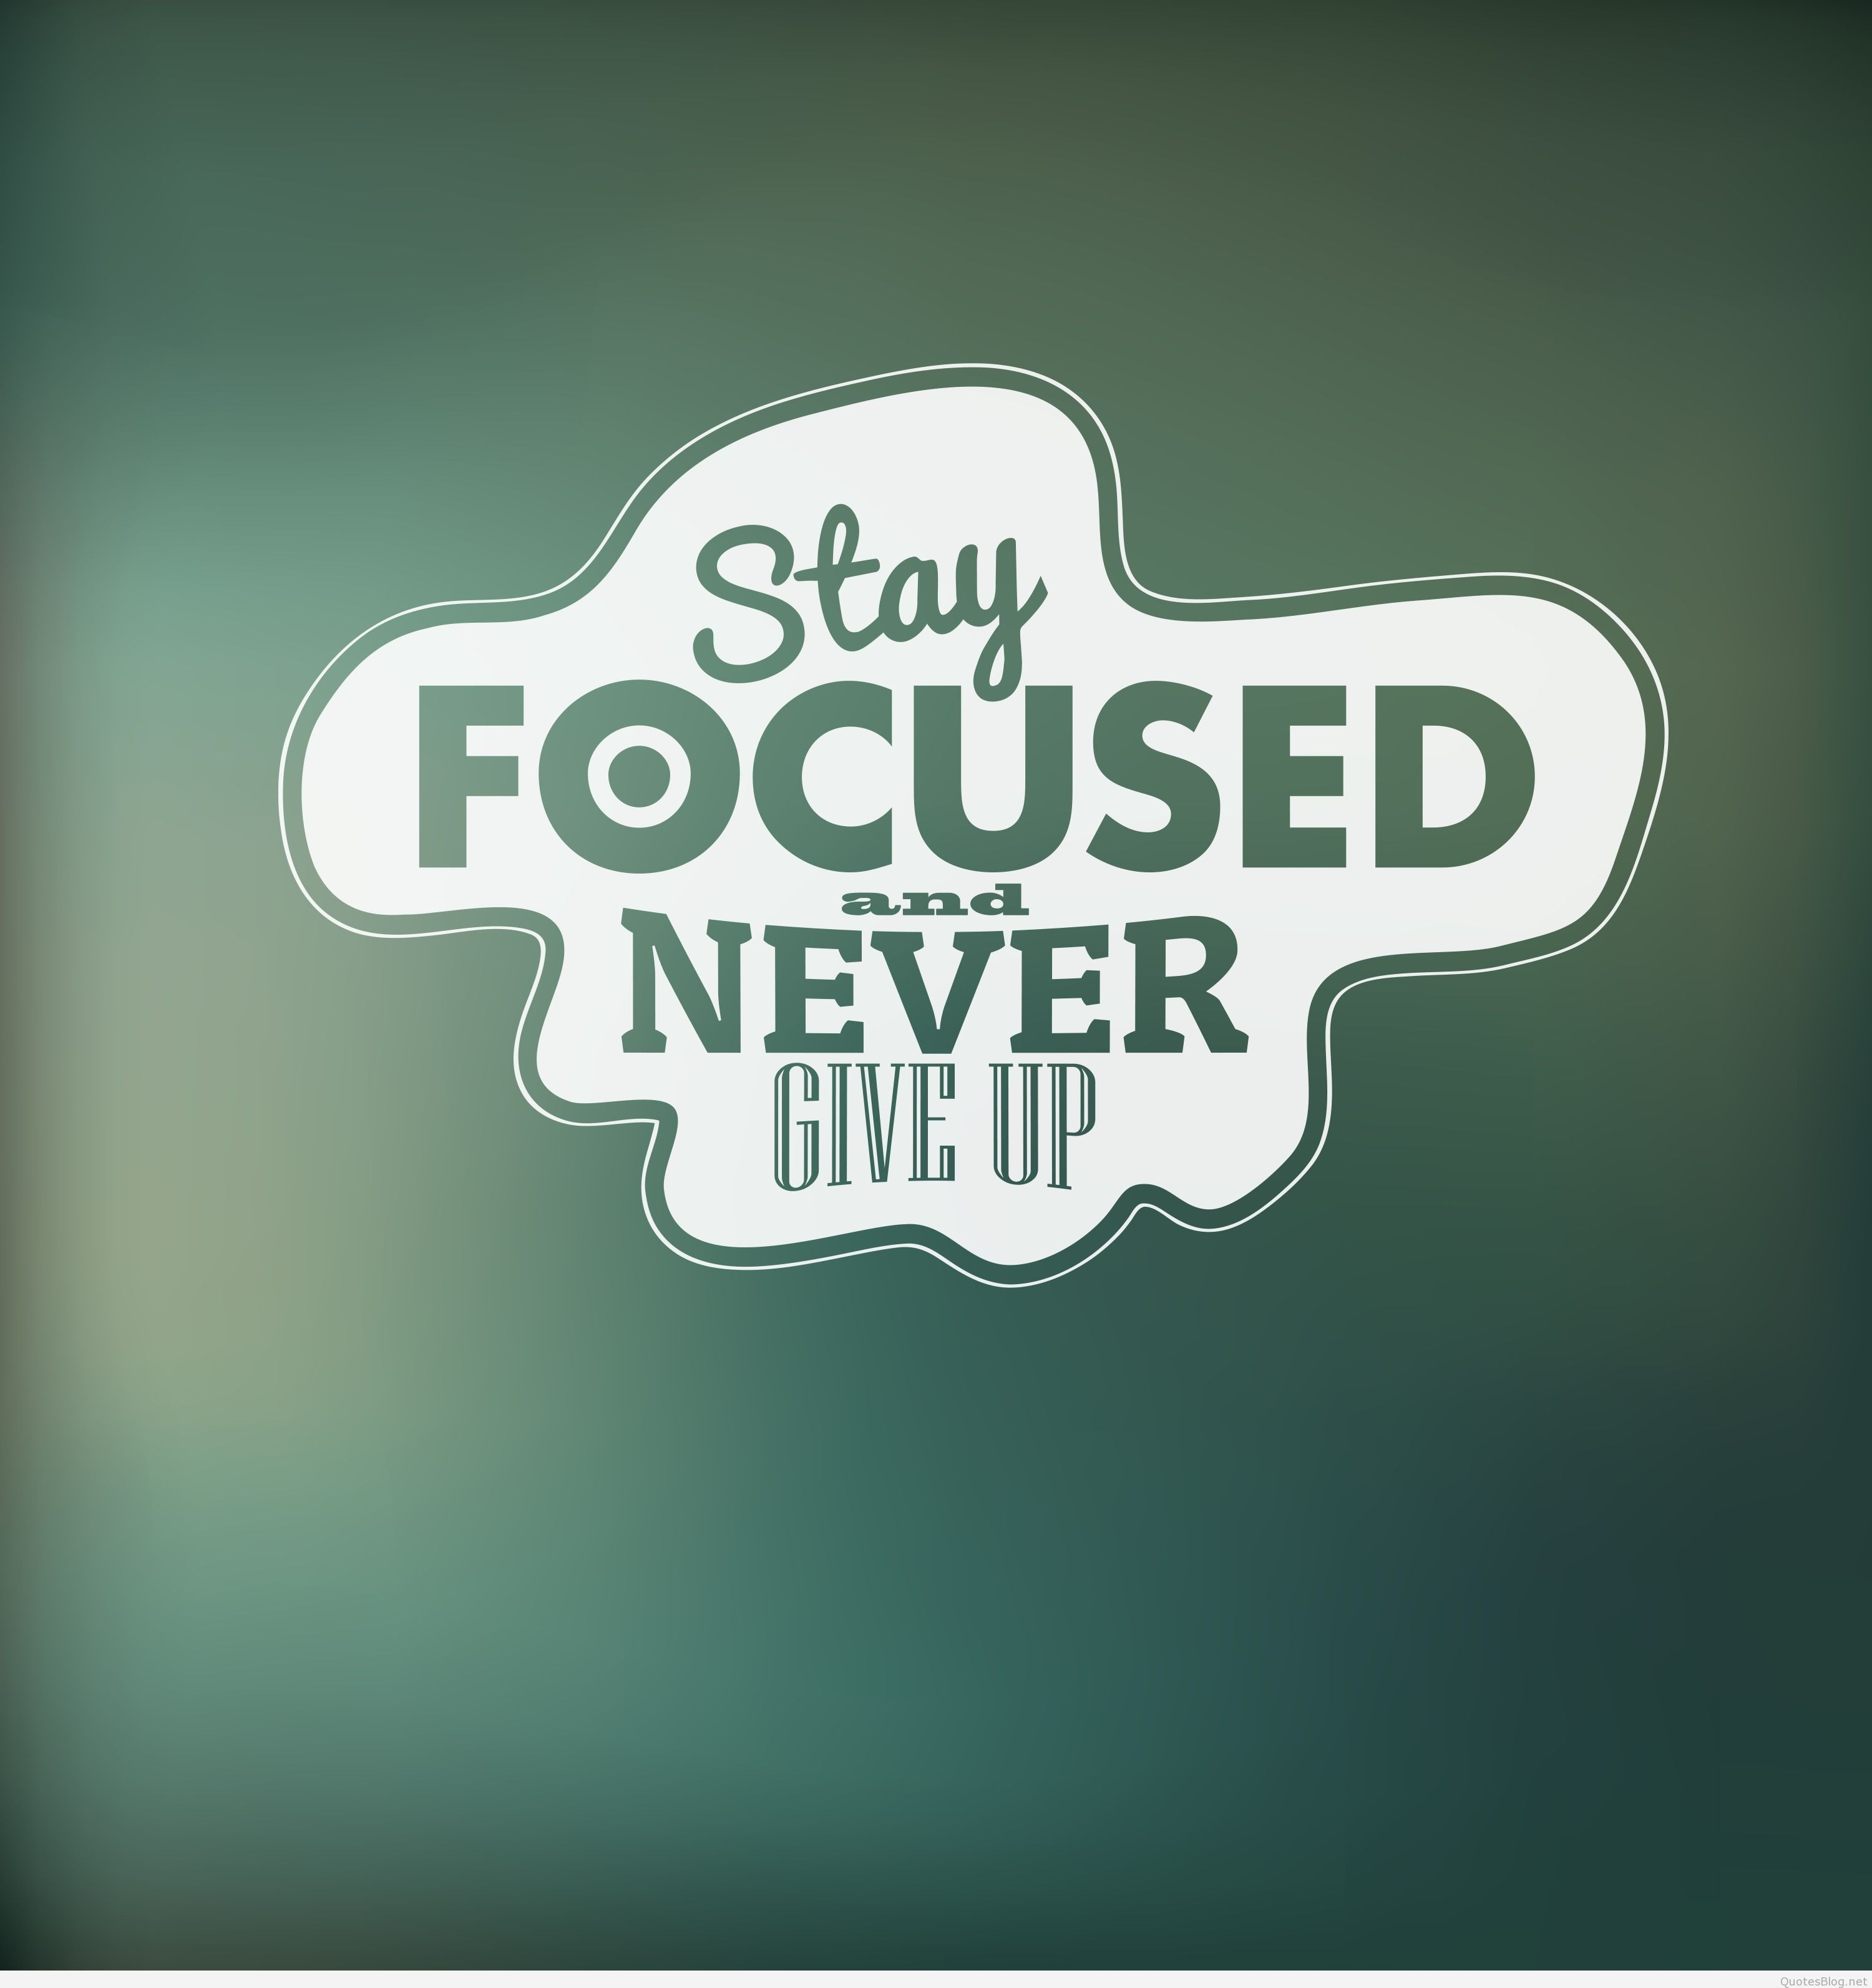 stay focused never give up motivational inspirational whatsapp dp display picture